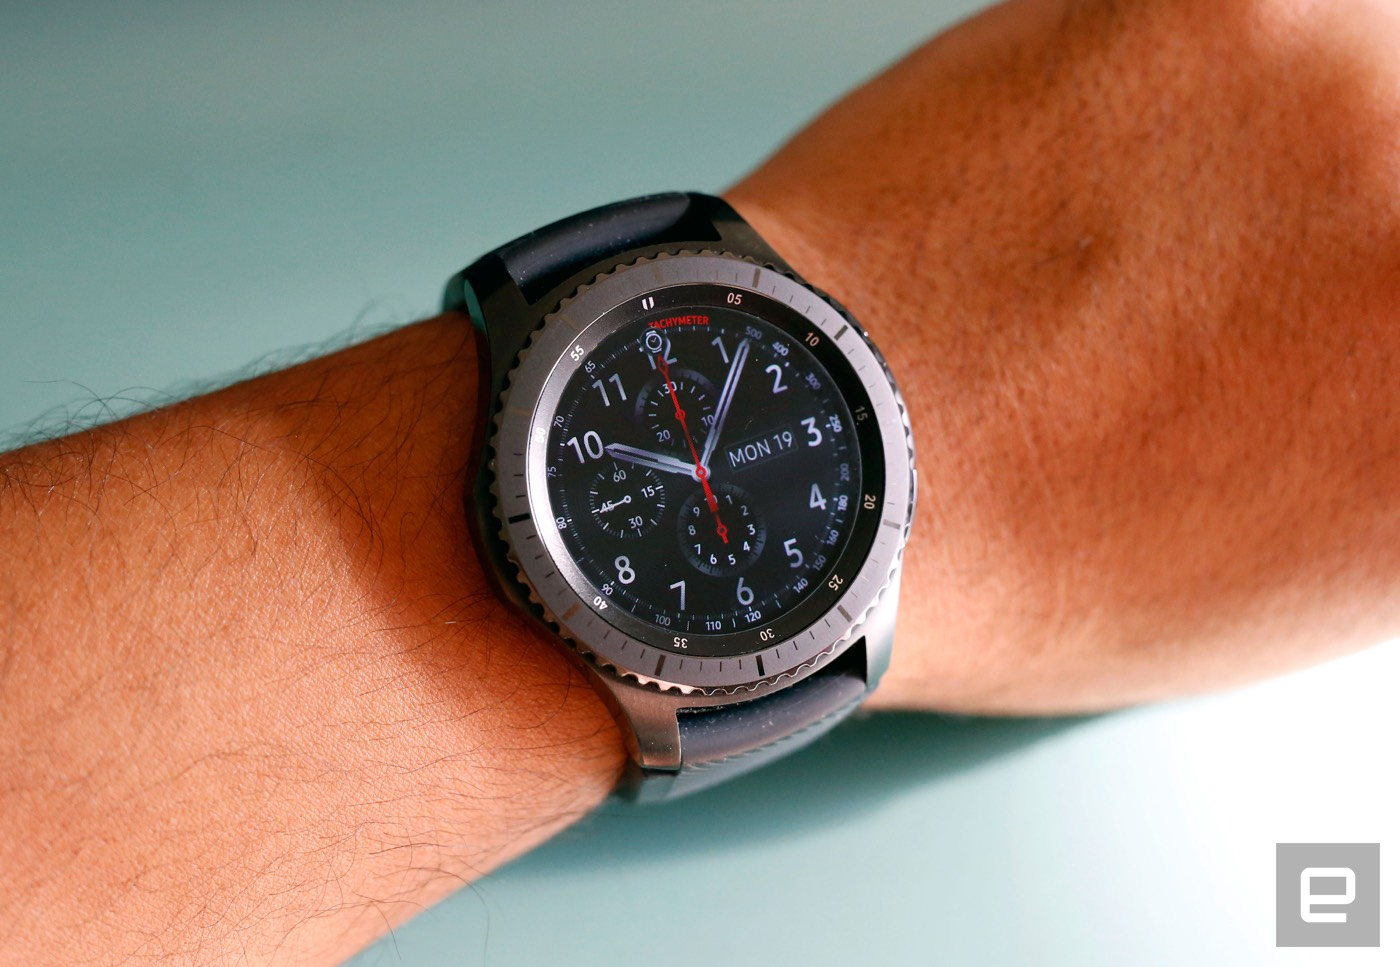 Samsung Gear S3 Frontier review: Lots of features, not